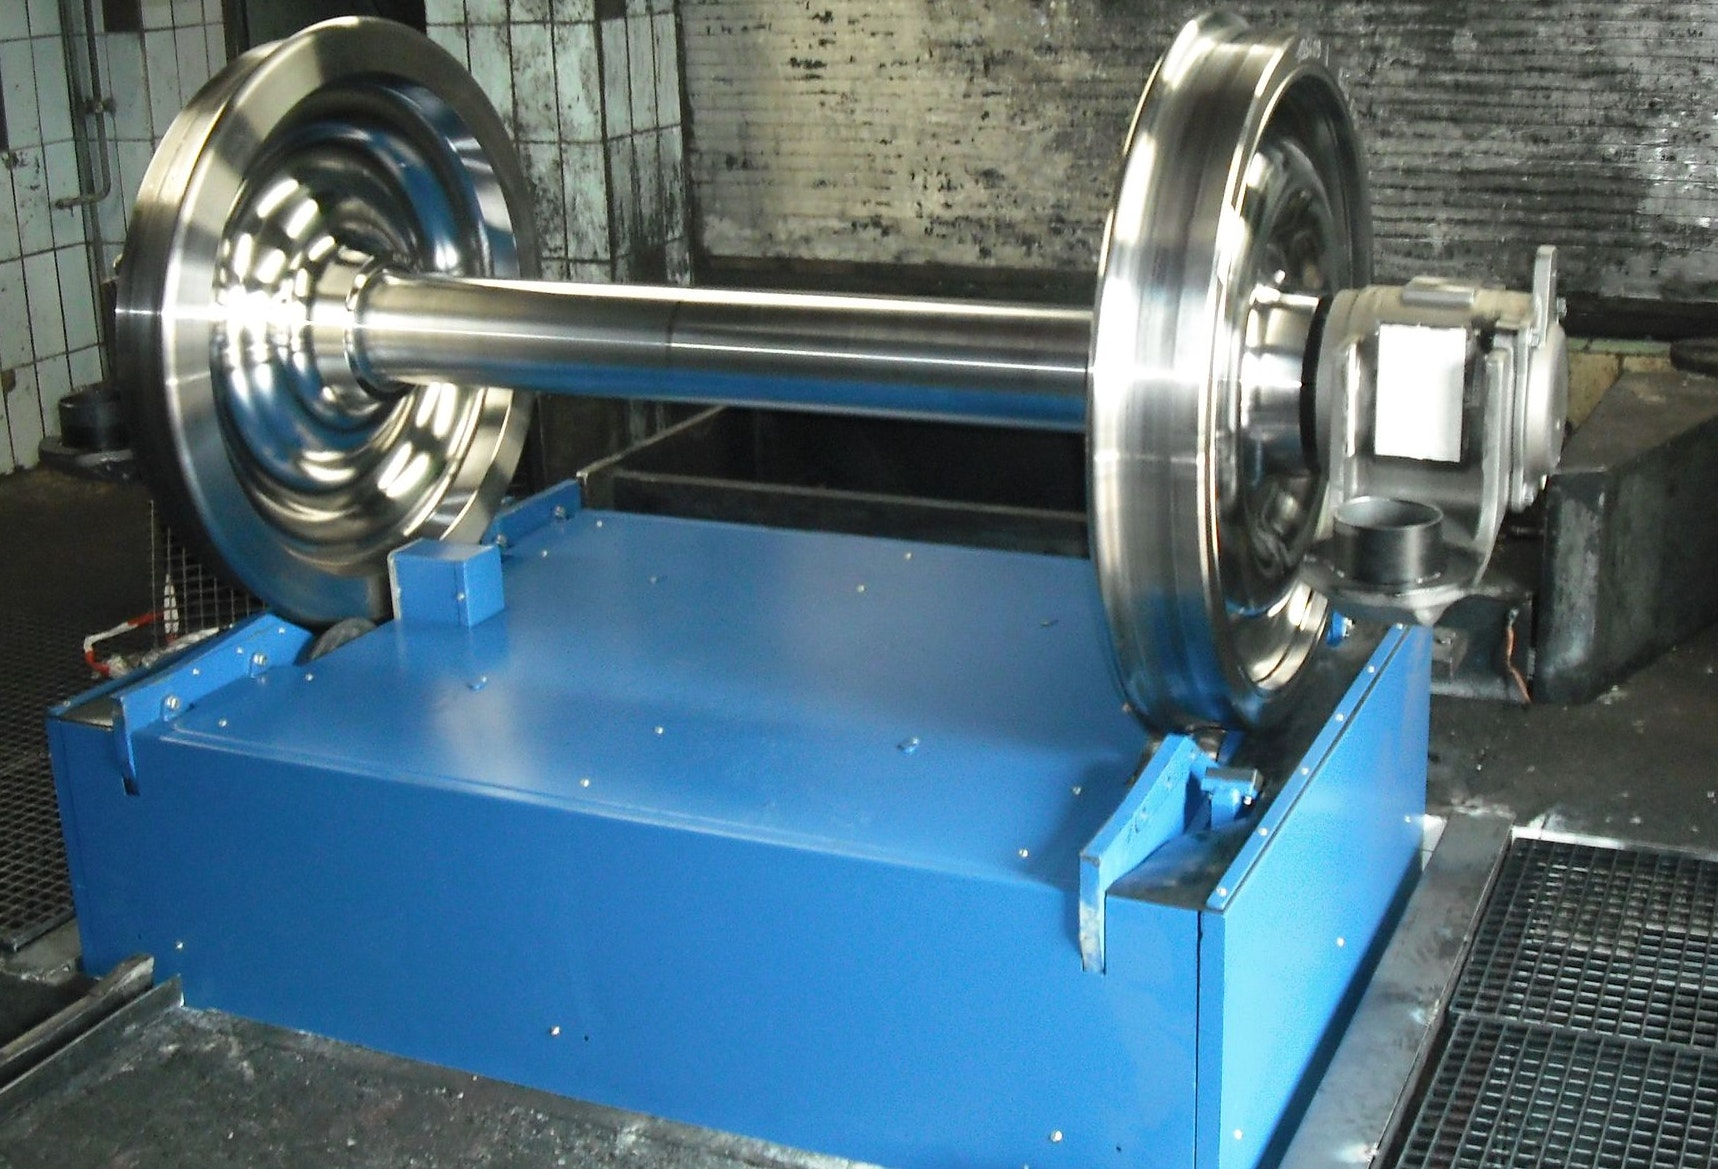 Lifting and rolling device: fixed track width: On the device there is a wheelset. You can see only the upper part of the device, because this lifting-rolling device is embedded in a pit on site.